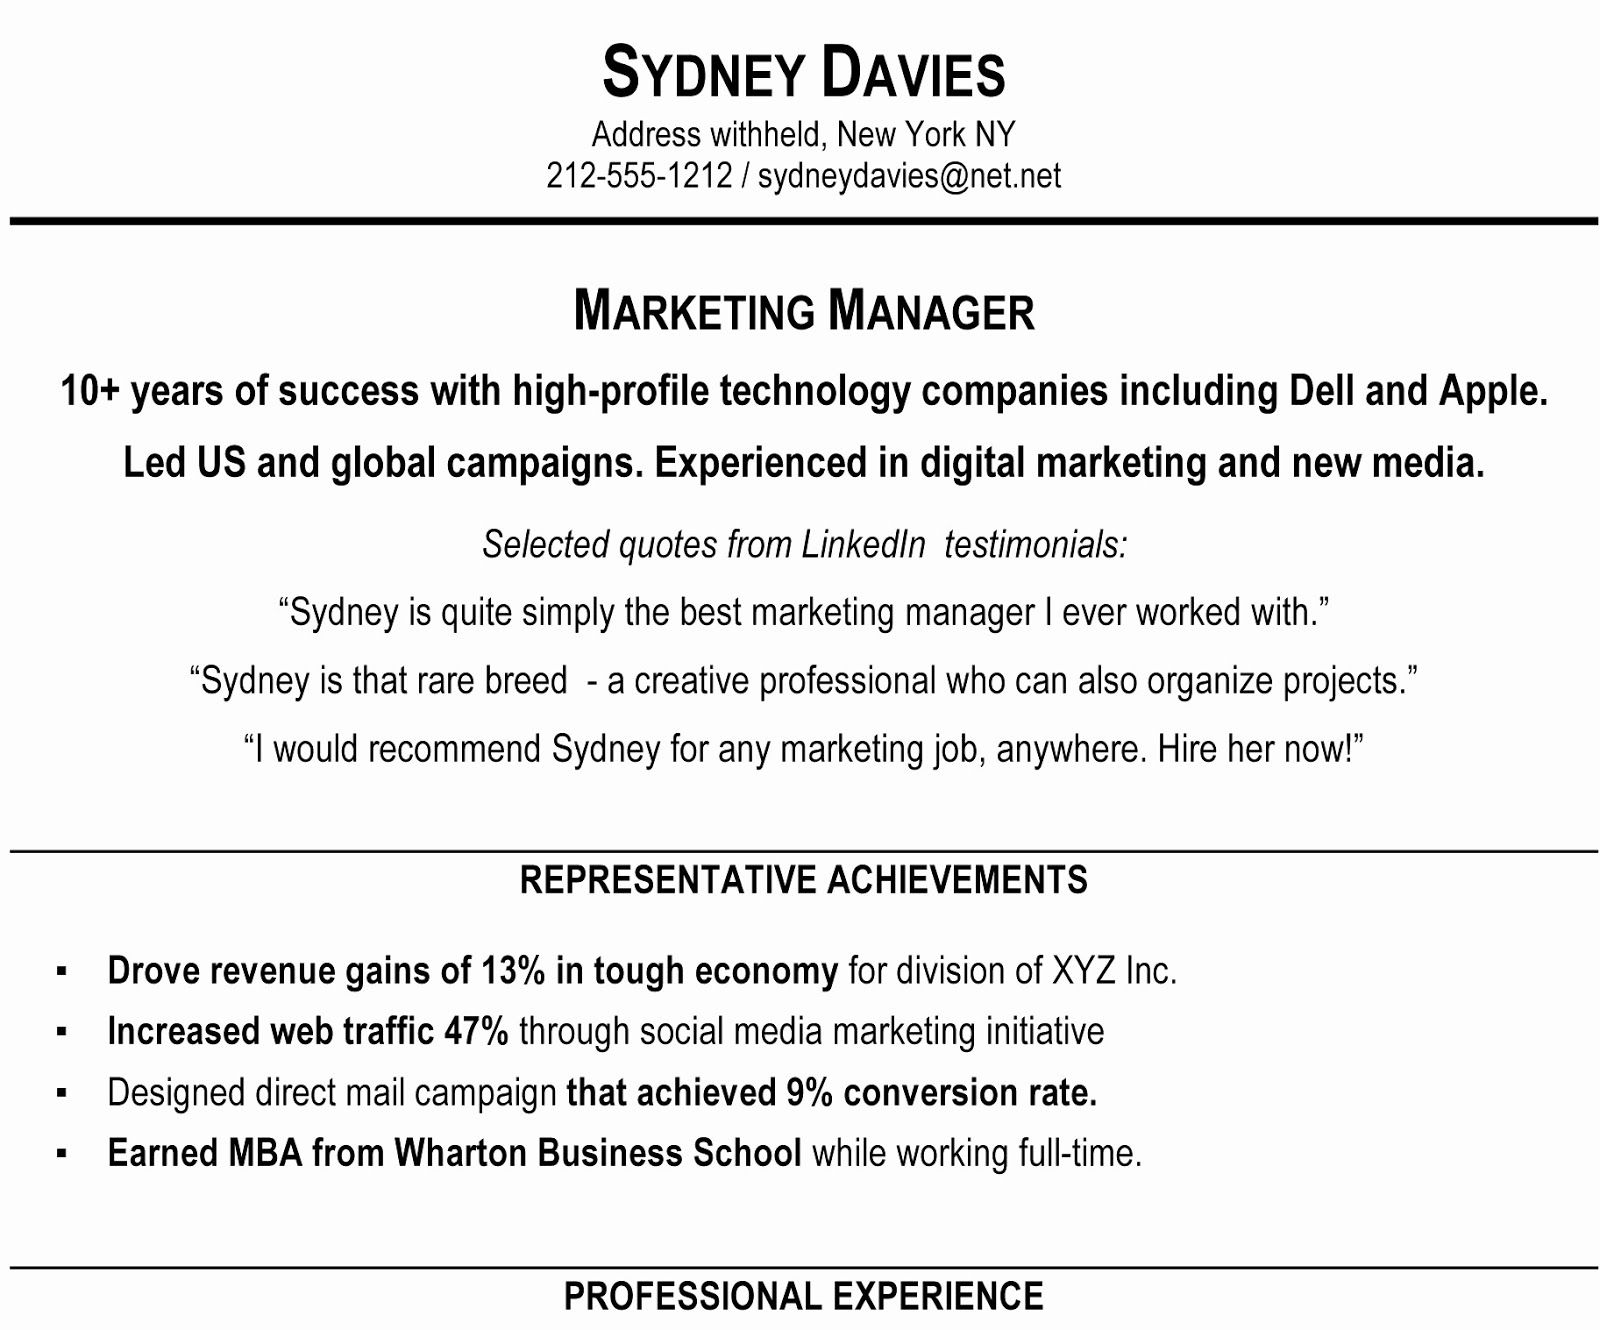 Marketing Assistant Resume Example Assistant Marketing Manager Resume Examples 2019 Marketing Assista Resume Summary Examples Resume Profile Marketing Resume